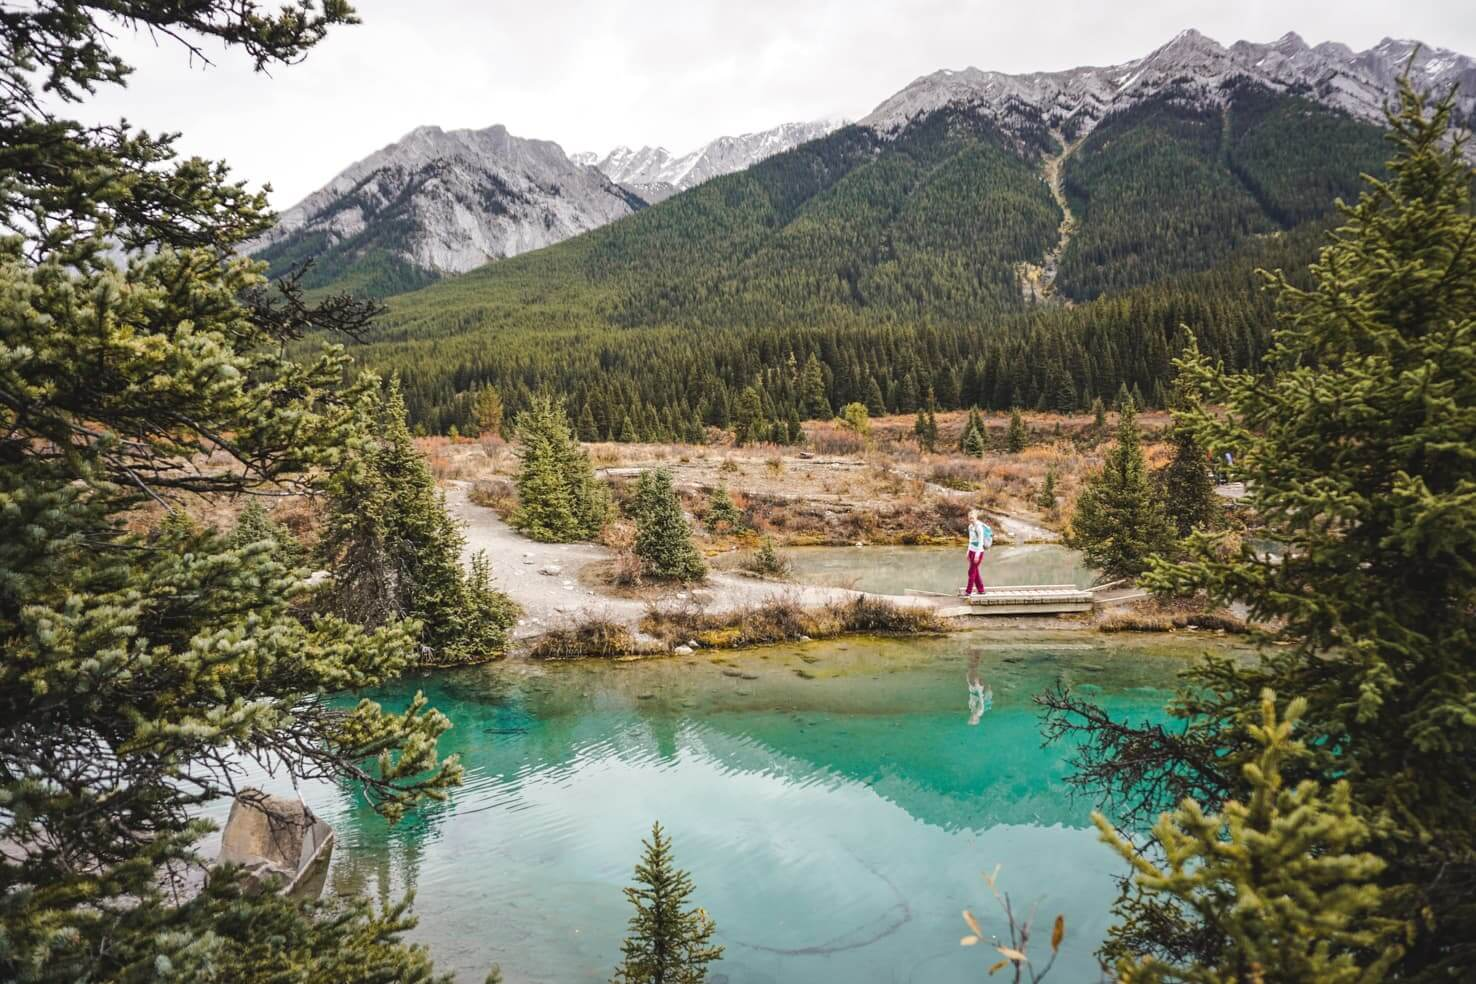 Canadian Rockies road trip itinerary - Ink Pots at Johnston Canyon, Banff National Park